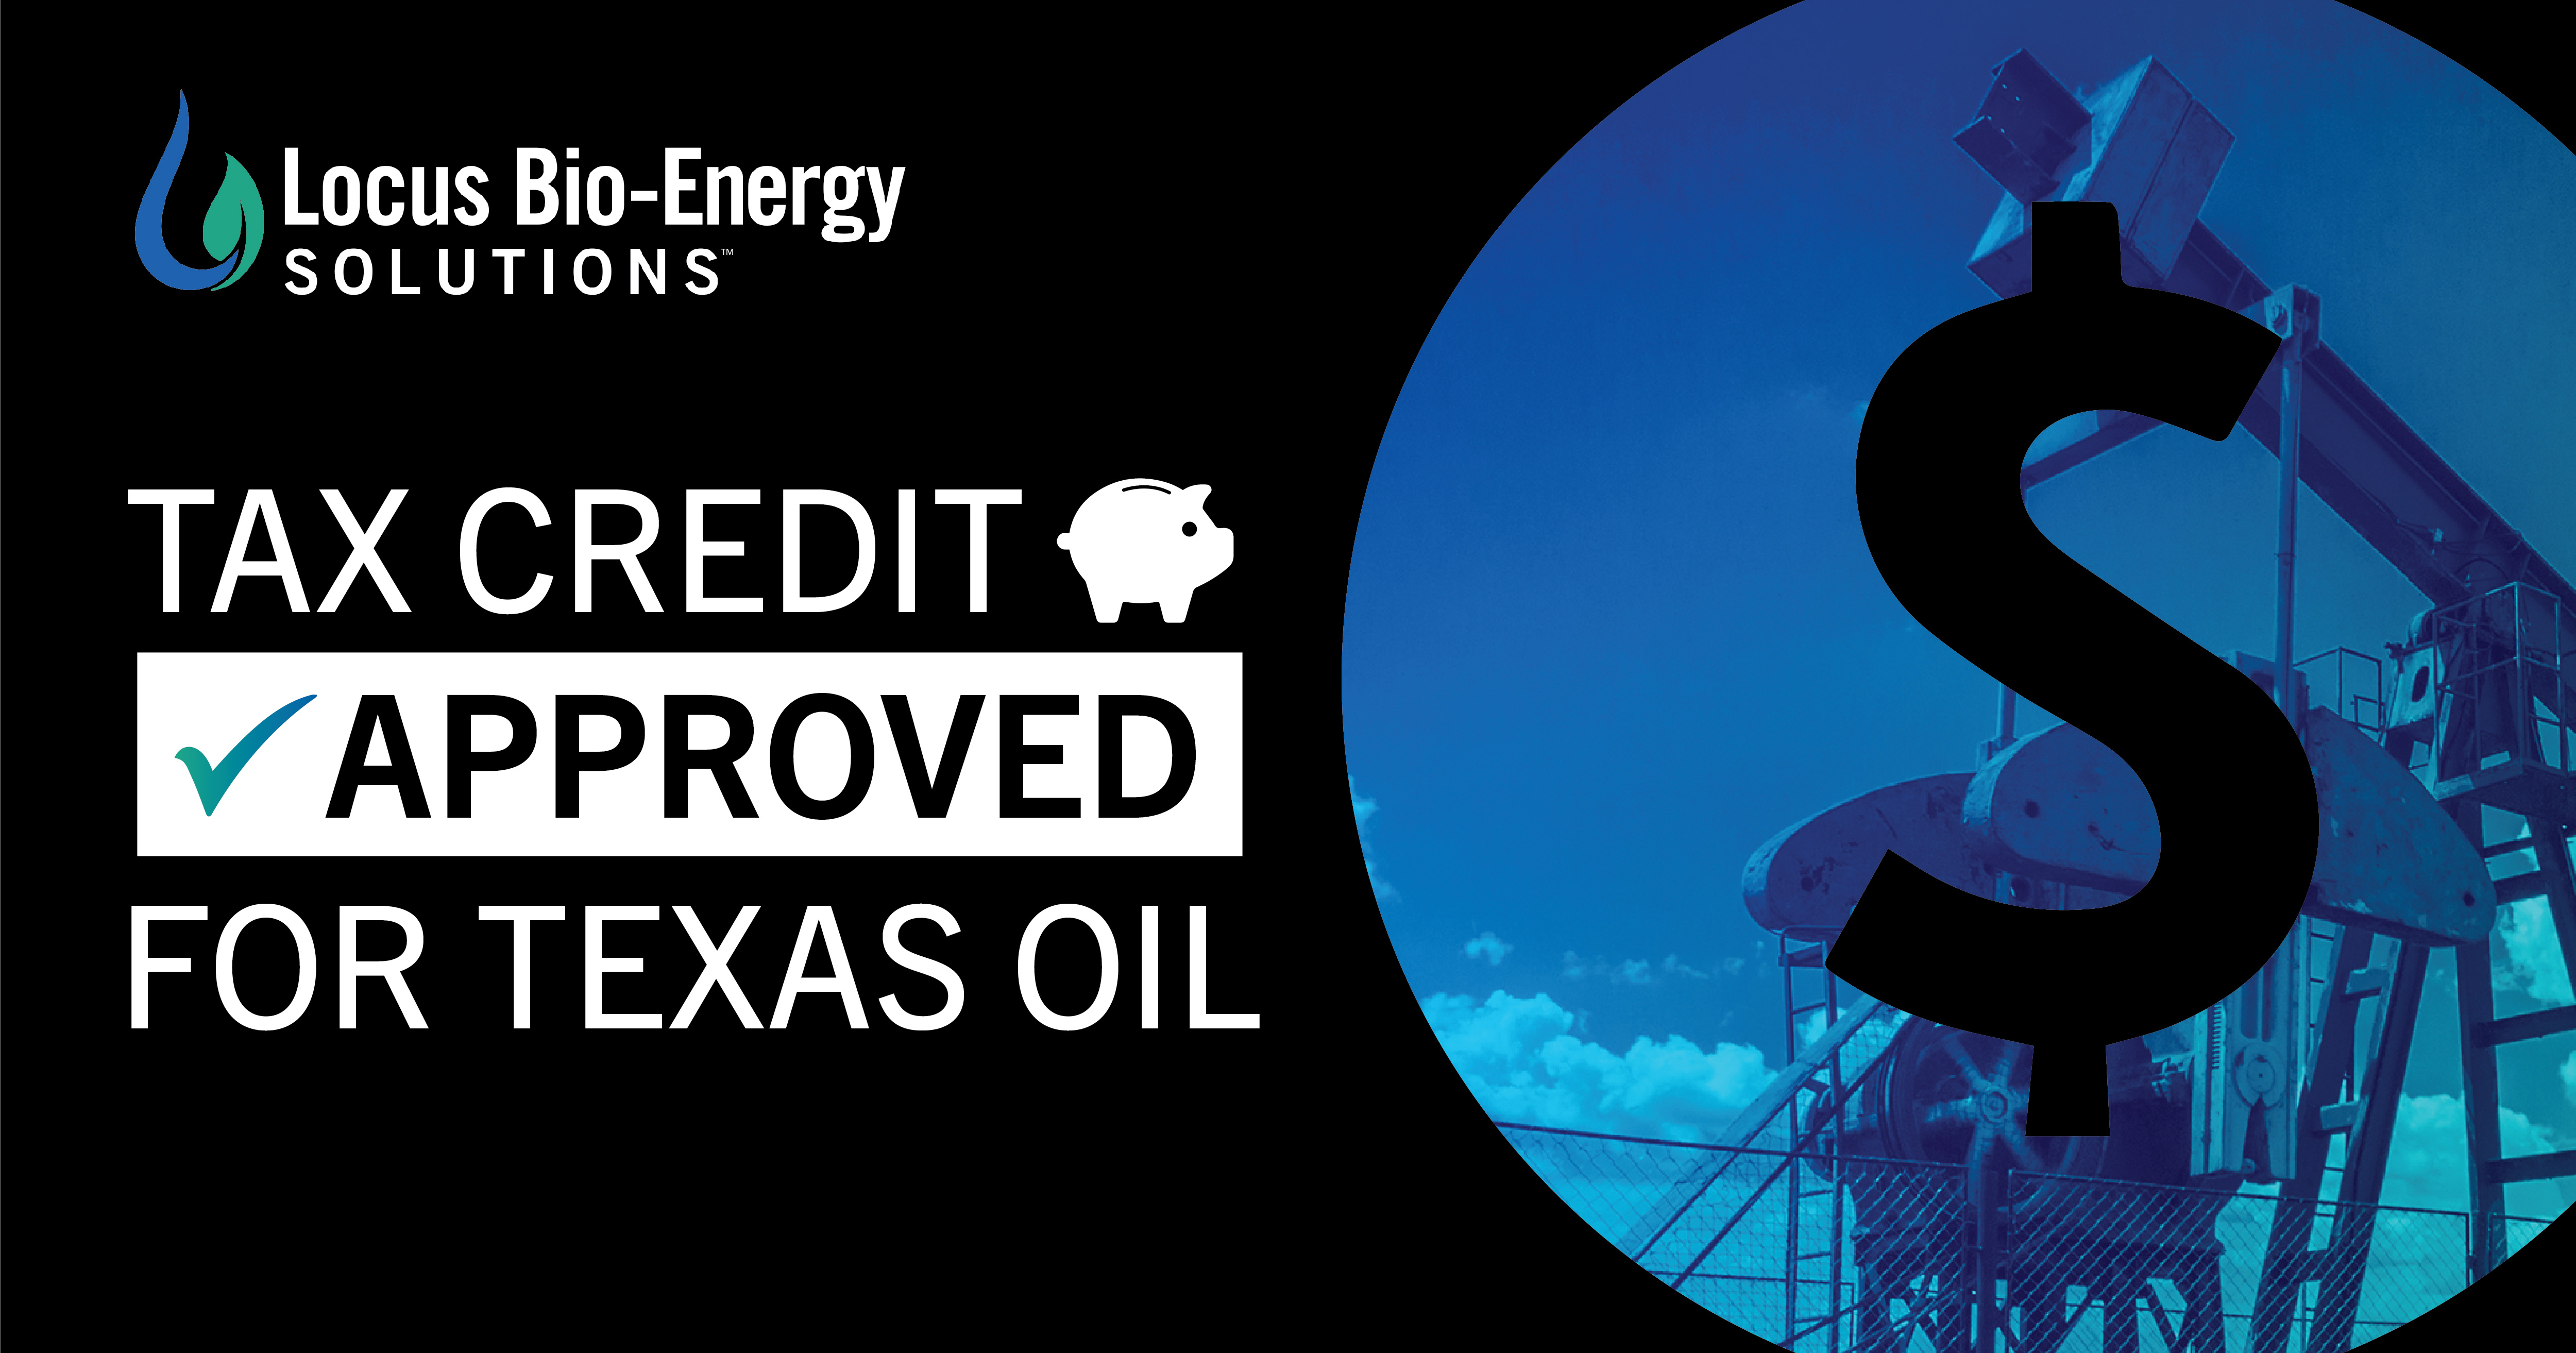 Texas RRC Approves 10-Year Oil Tax Credit for Use of Green EOR Technology